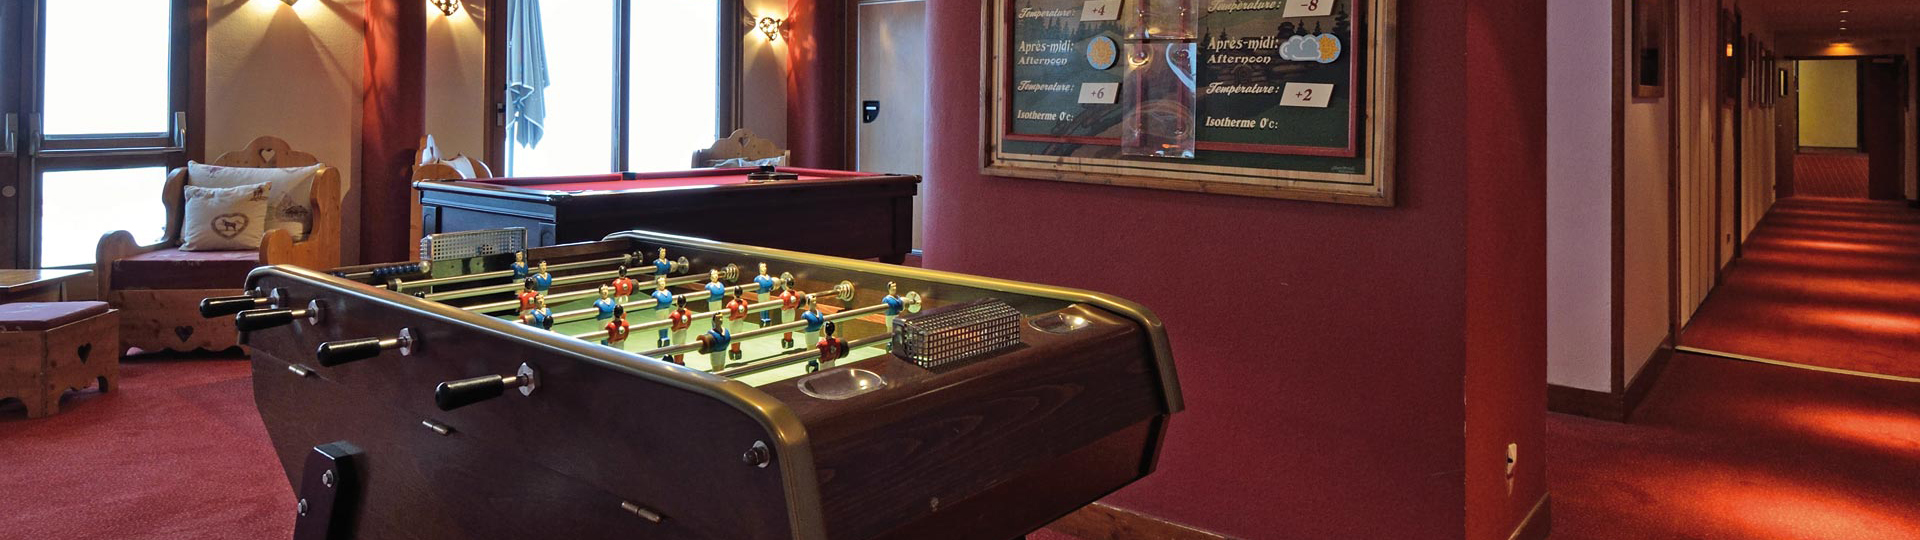 Games room hotel belle plagne